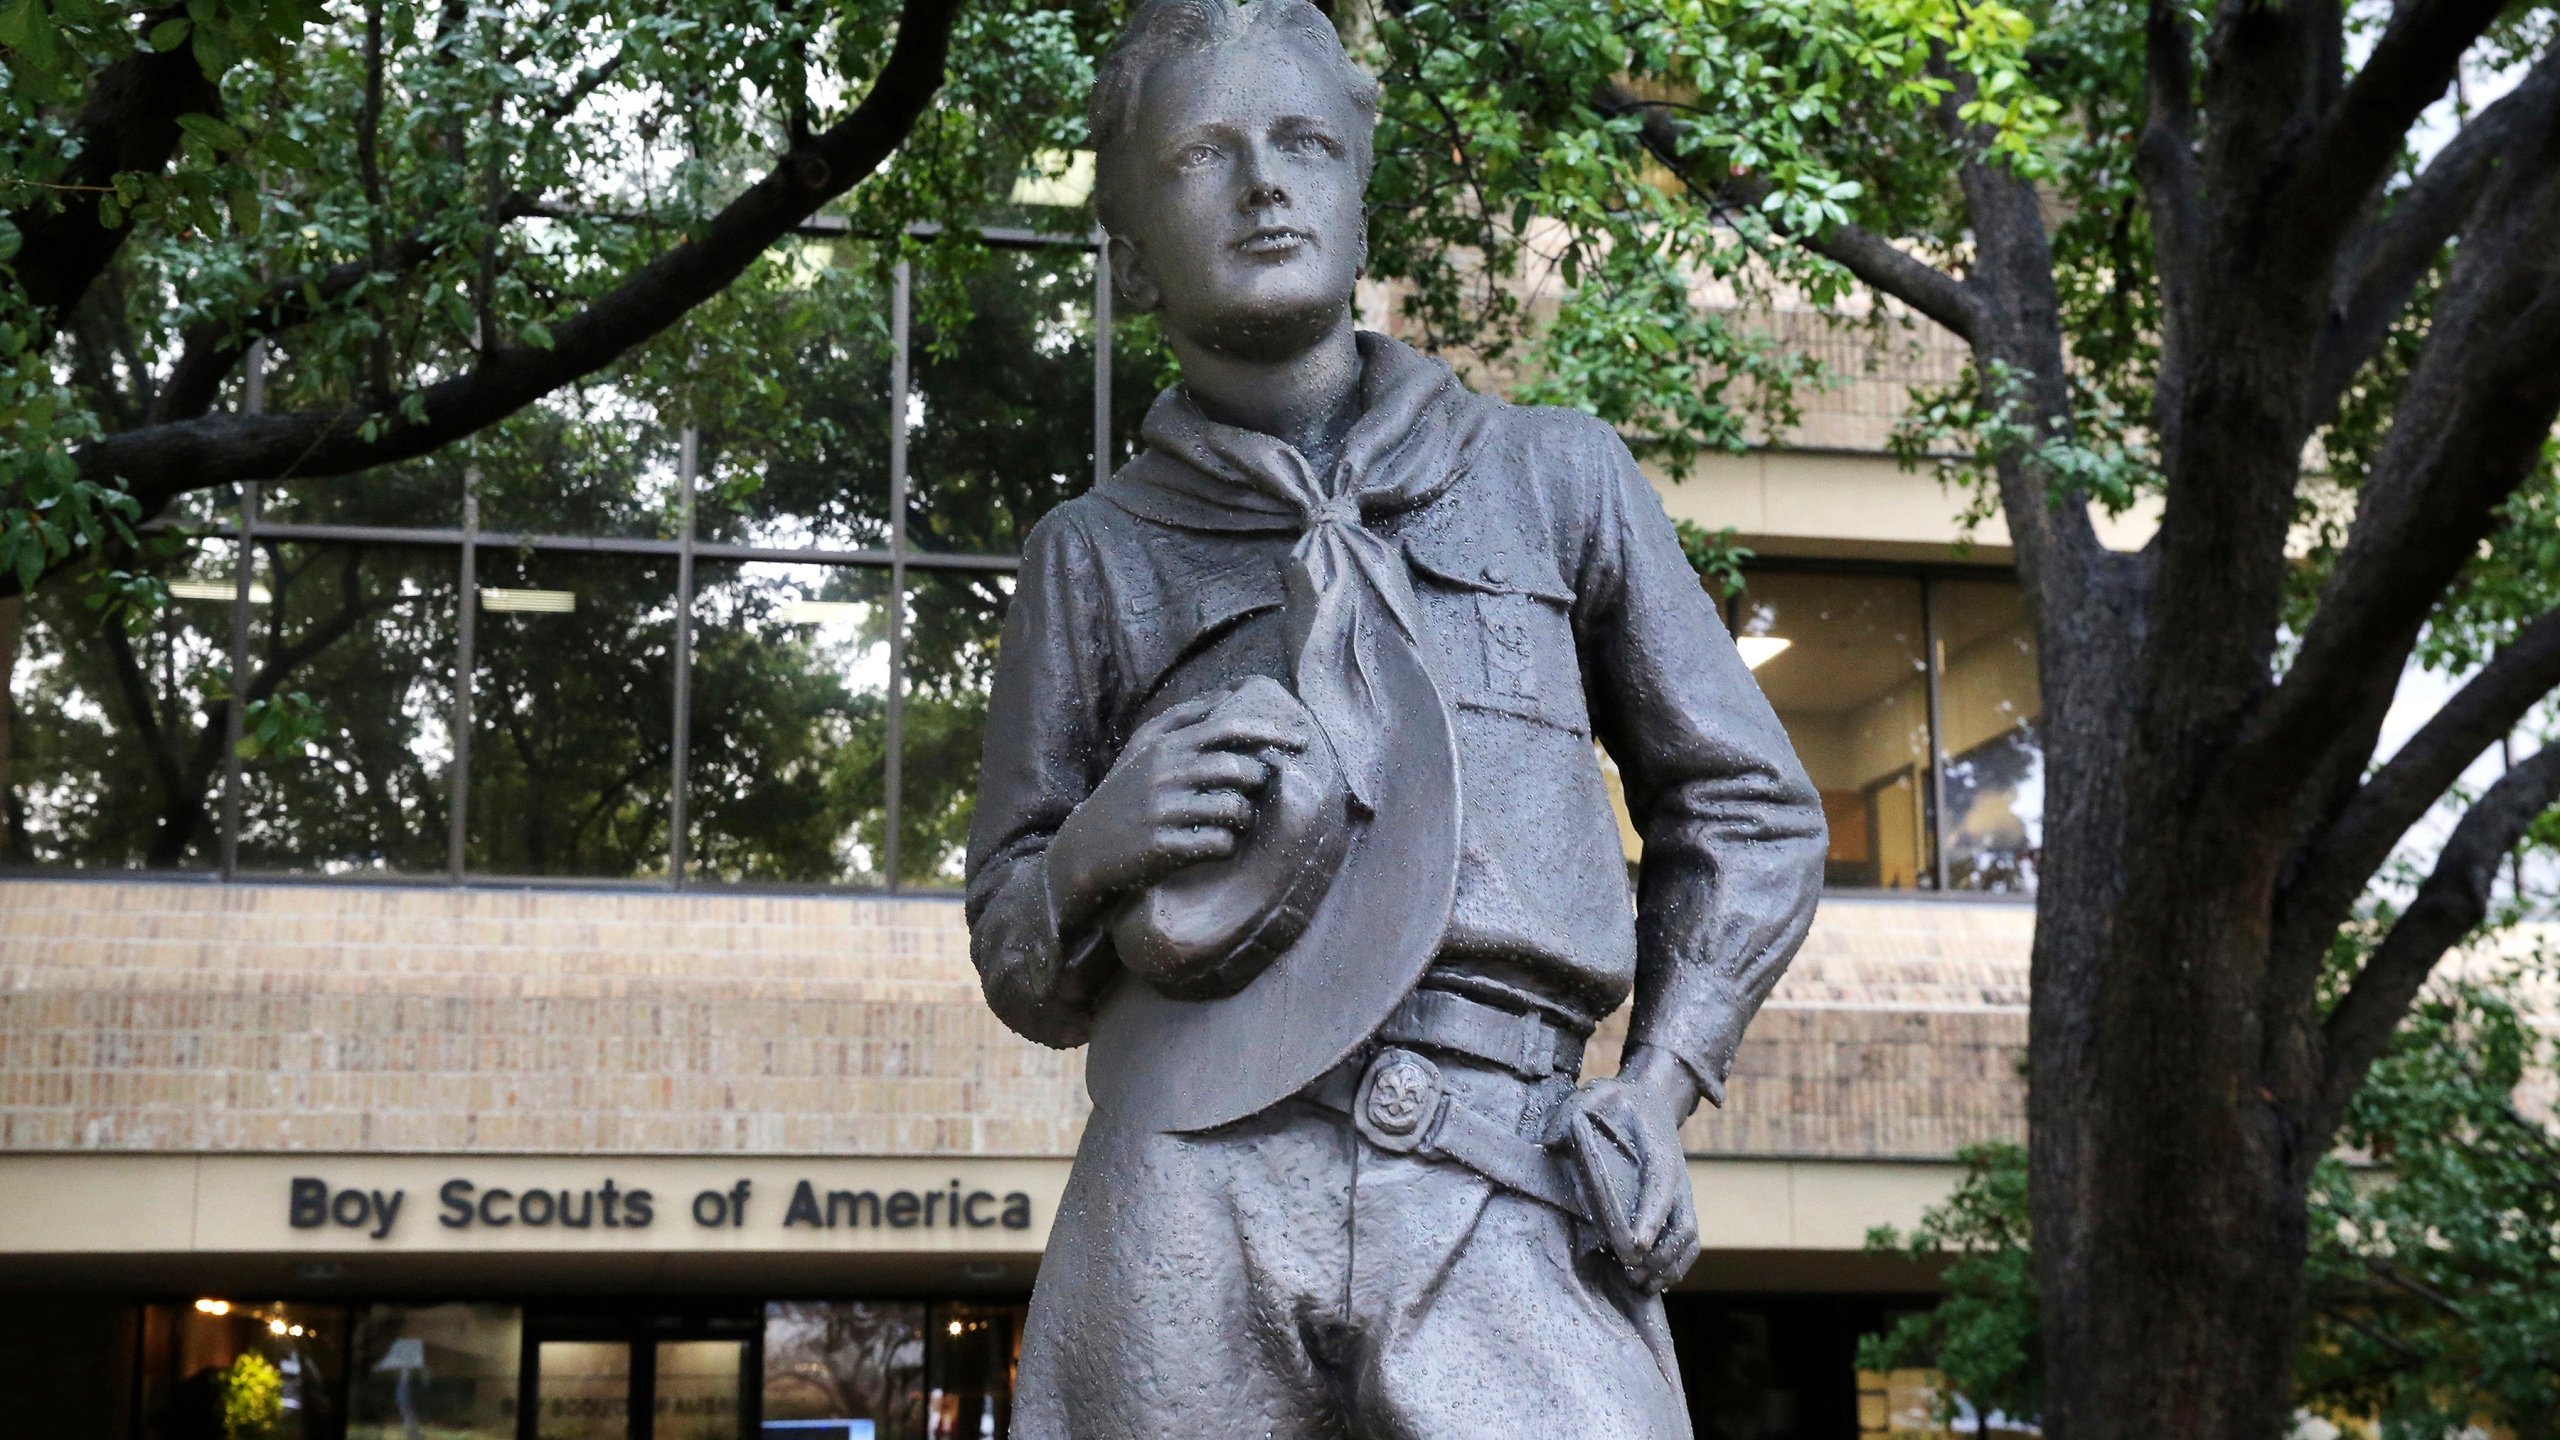 In this Feb. 12, 2020 file photo, a statue stands outside the Boy Scouts of America headquarters in Irving, Texas. The Boy Scouts of America have reached an agreement with attorneys representing some 60,000 victims of child sex abuse in what could prove to be a pivotal moment in the organization's bankruptcy case. Attorneys for the BSA filed court papers late Thursday, July 1, 2021 outlining a restructuring support agreement, or RSA, with attorneys representing abuse victims. (AP Photo/LM Otero, File)